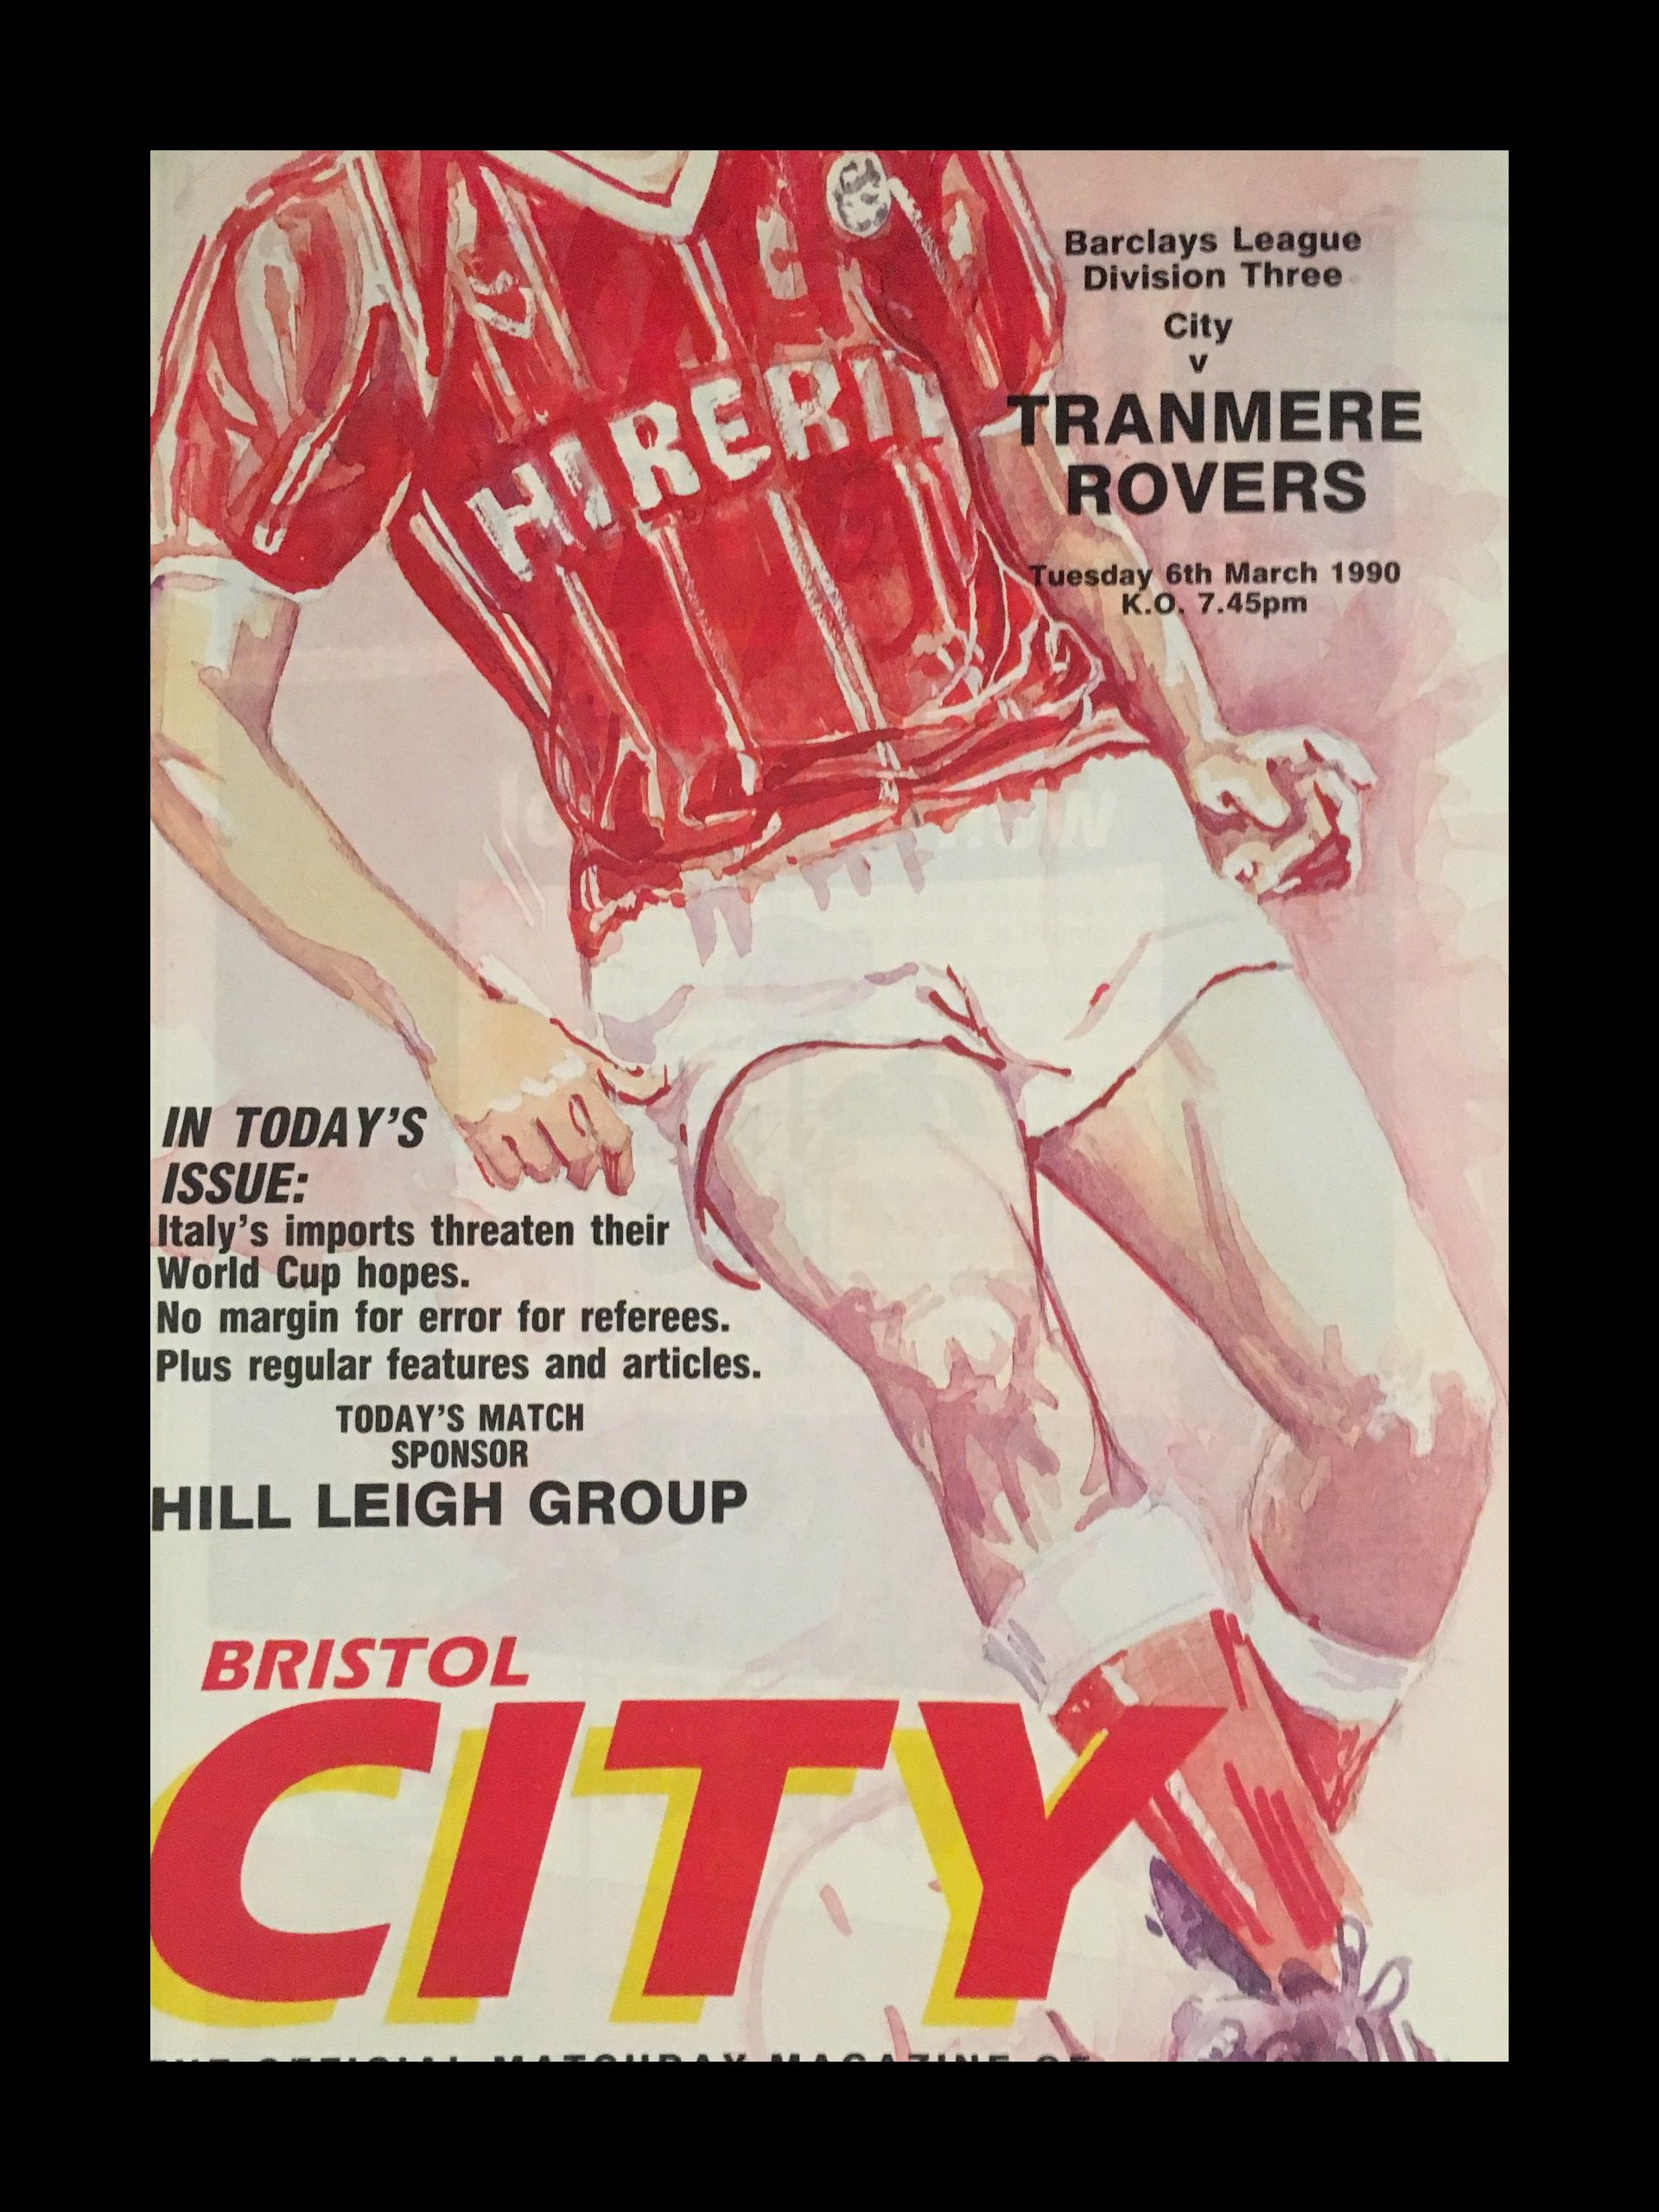 Bristol City v Tranmere Rovers 06-03-1990 Programme